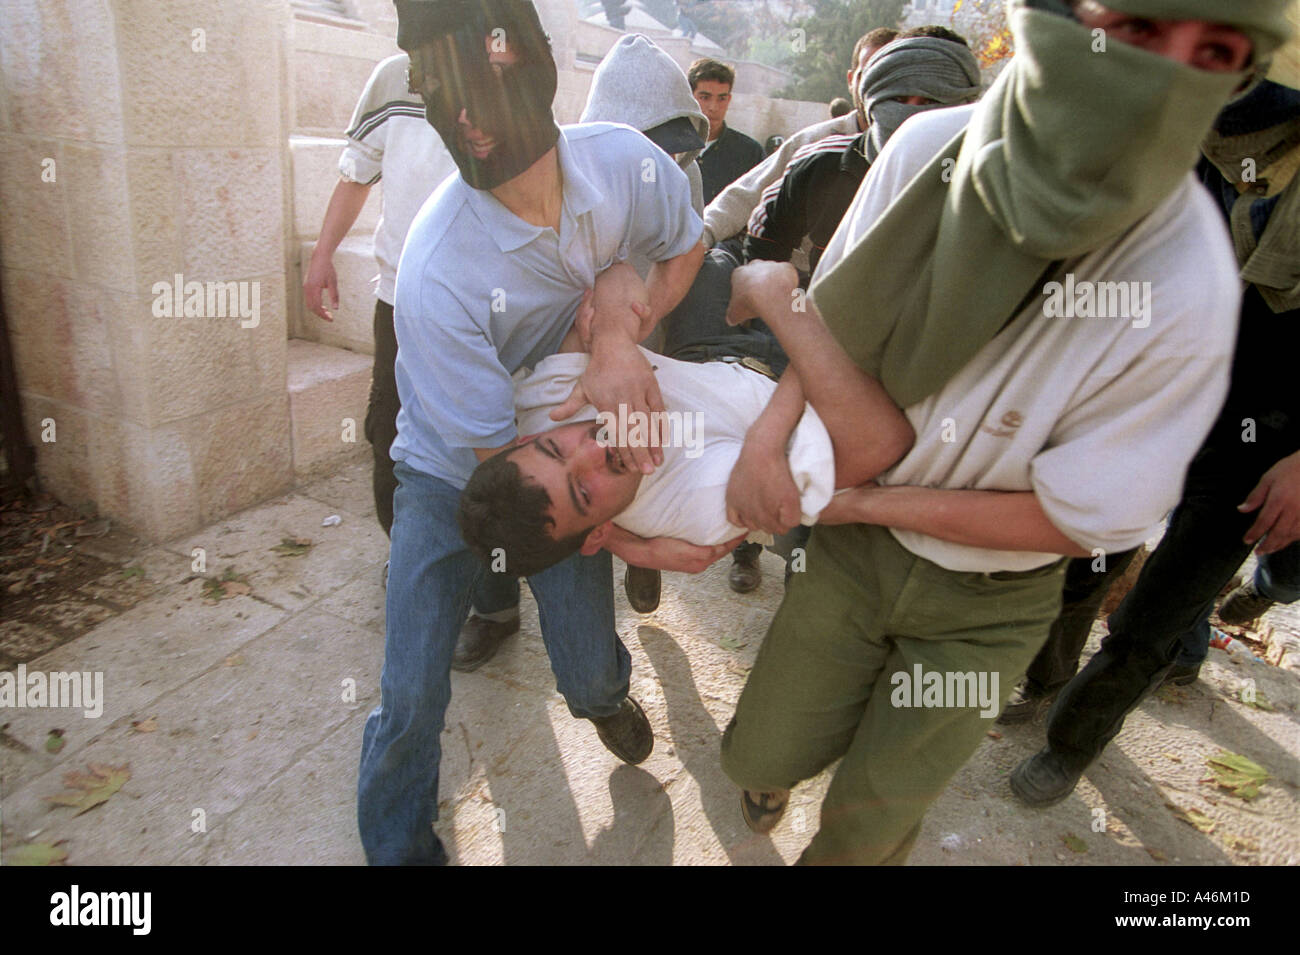 al aqsa mosque clash a palestinian demonstrator is carried to an ambulance after being shot during a clash with the israeli army on the 13th anniversary of the first intifada - Stock Image